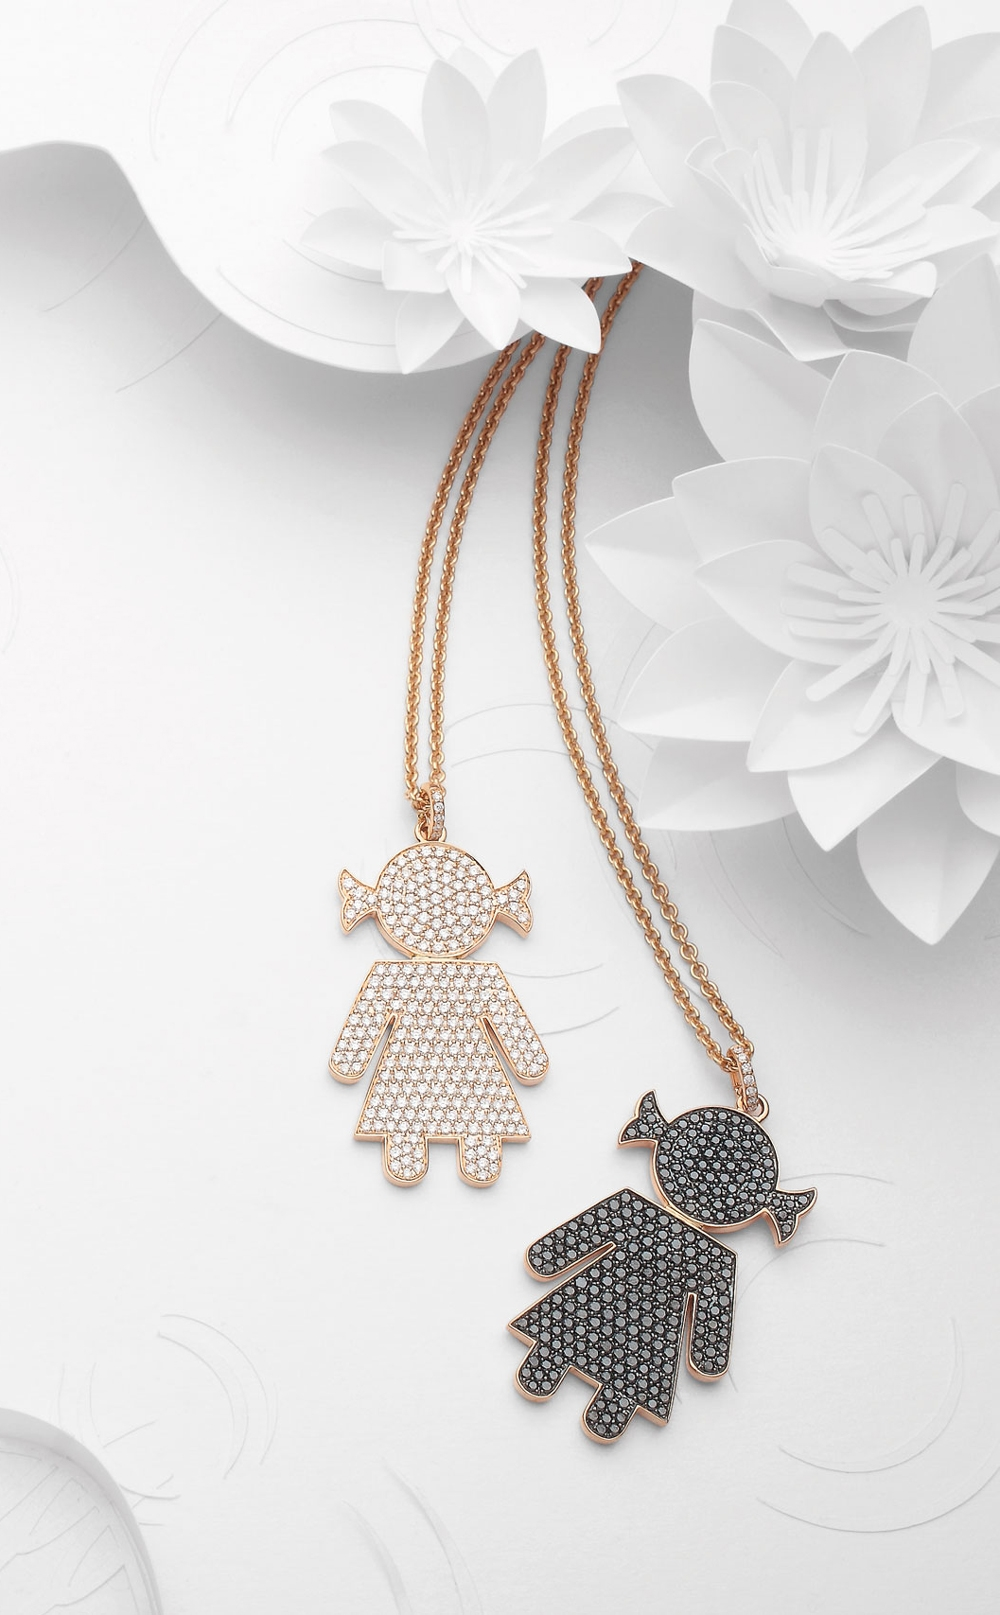 Bimba pendants pink gold and brilliants | Easy - by Crivelli